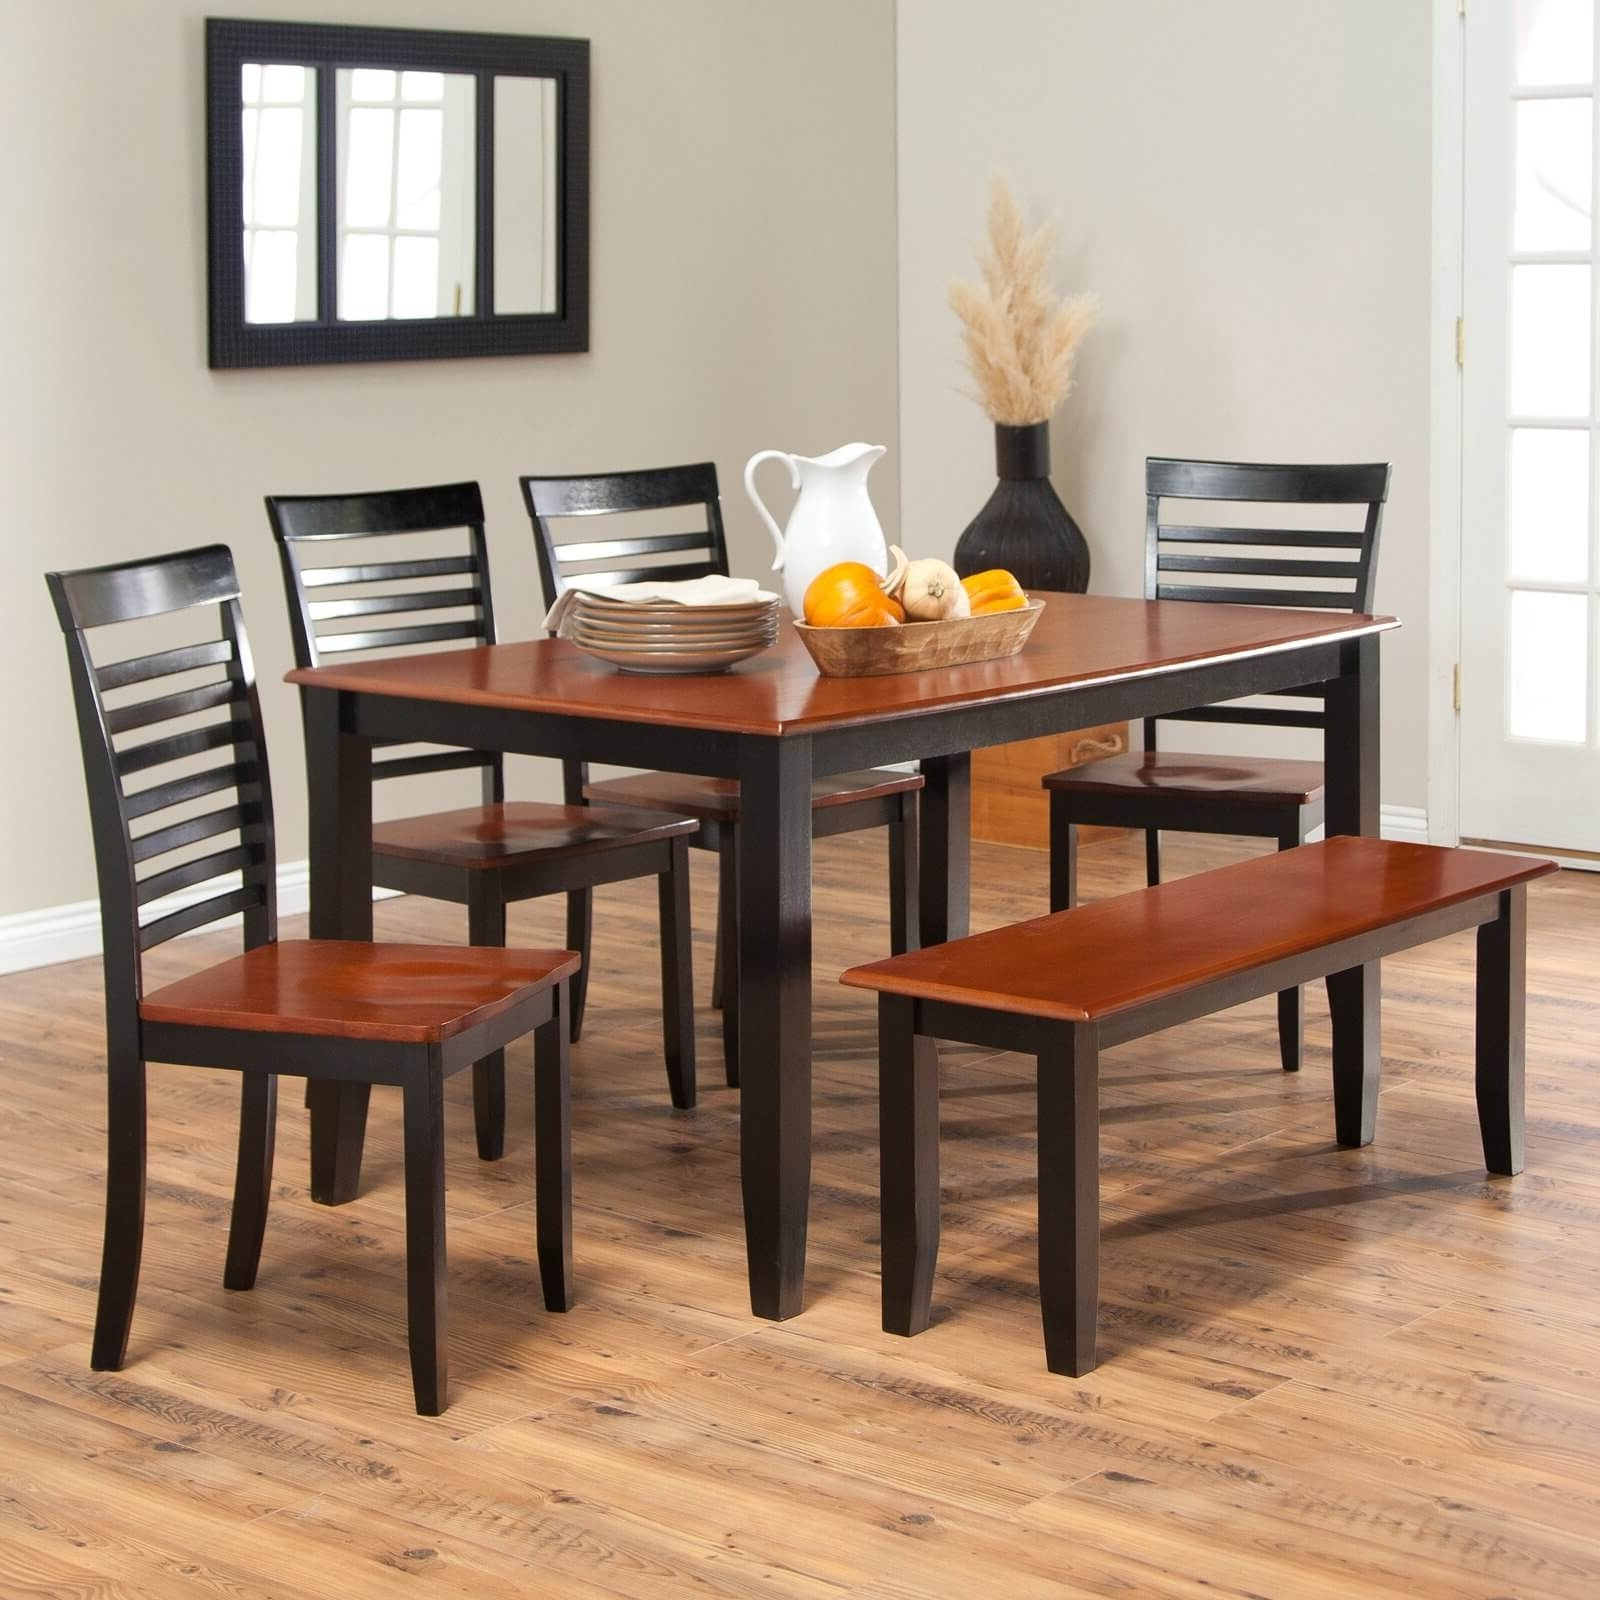 Dark Wood Dining Tables And 6 Chairs Within Latest 26 Dining Room Sets (Big And Small) With Bench Seating (2018) (Gallery 13 of 25)